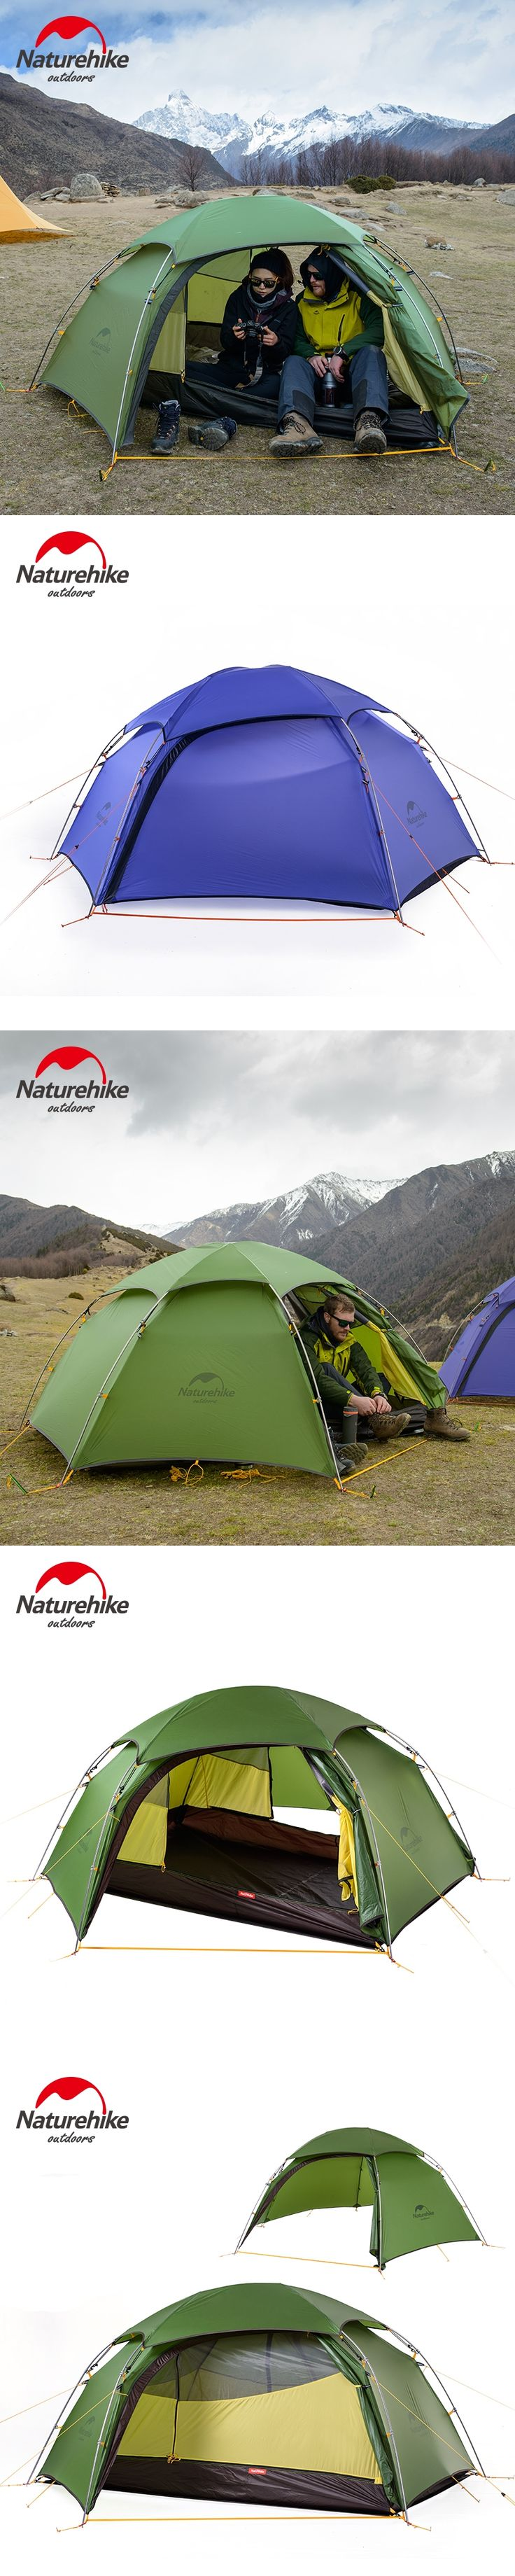 Naturehike c&ing tent Outdoor Silicone Ultralight Tents Double Layer hiking travel NH C&ing Aluminum Pole Tents & Best 25+ Aluminum pole ideas on Pinterest | One man tent 1 man ...